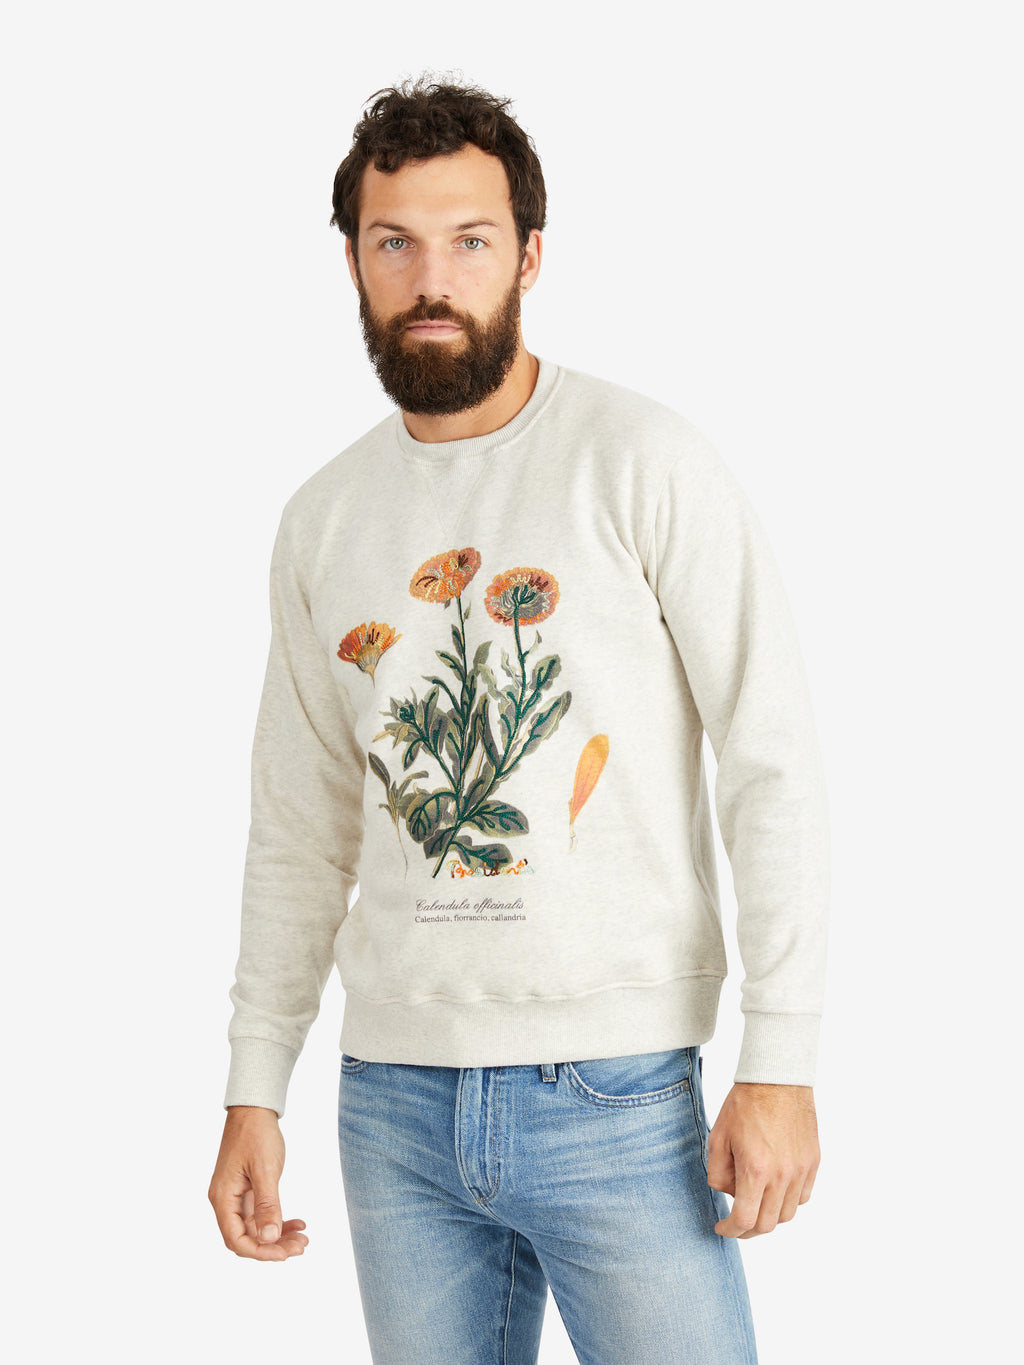 President's Calendula Embroidery Sweater Crew